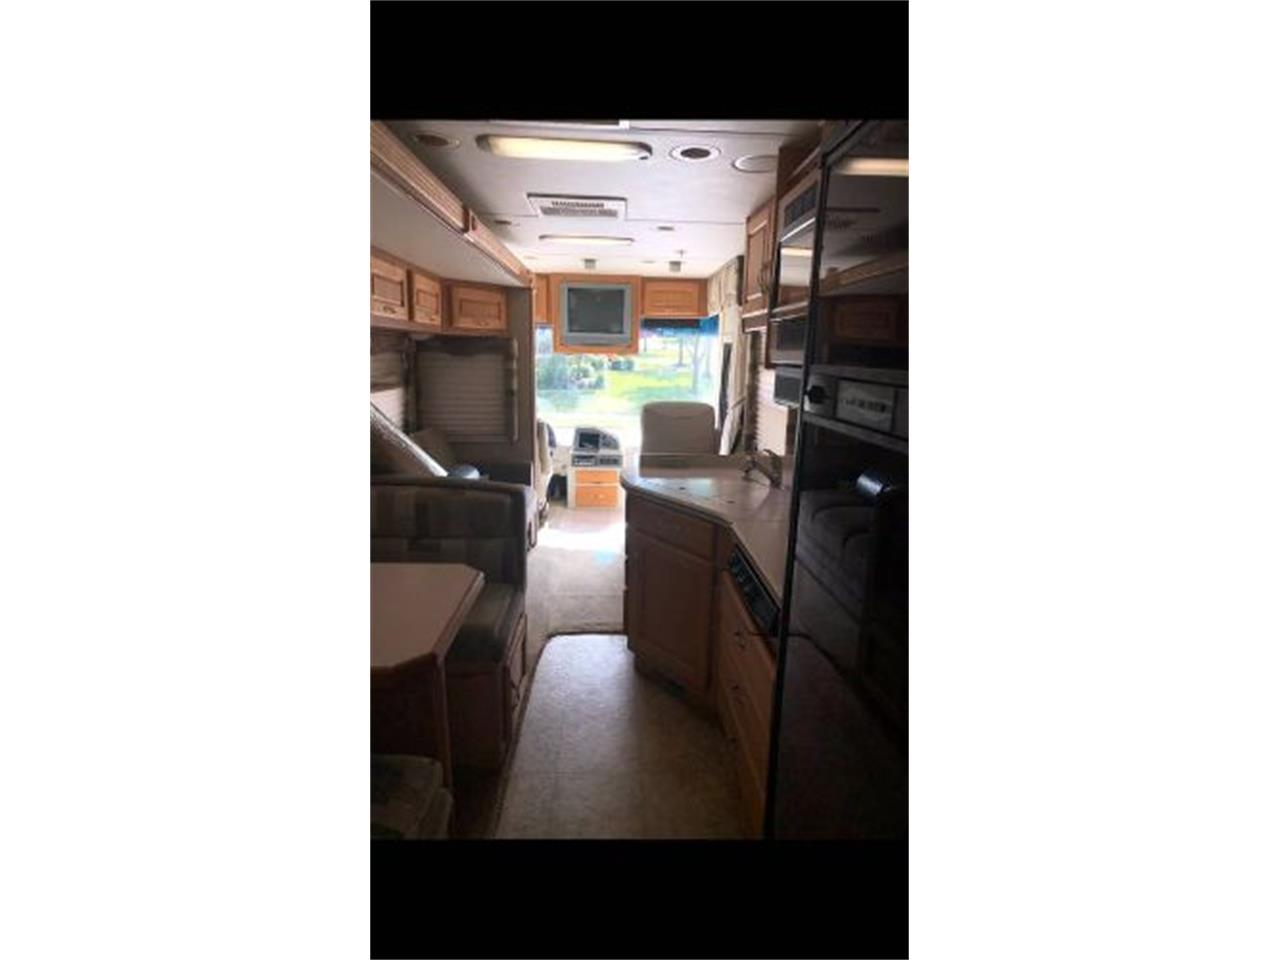 2006 Holiday Rambler Recreational Vehicle for sale in Cadillac, MI – photo 7